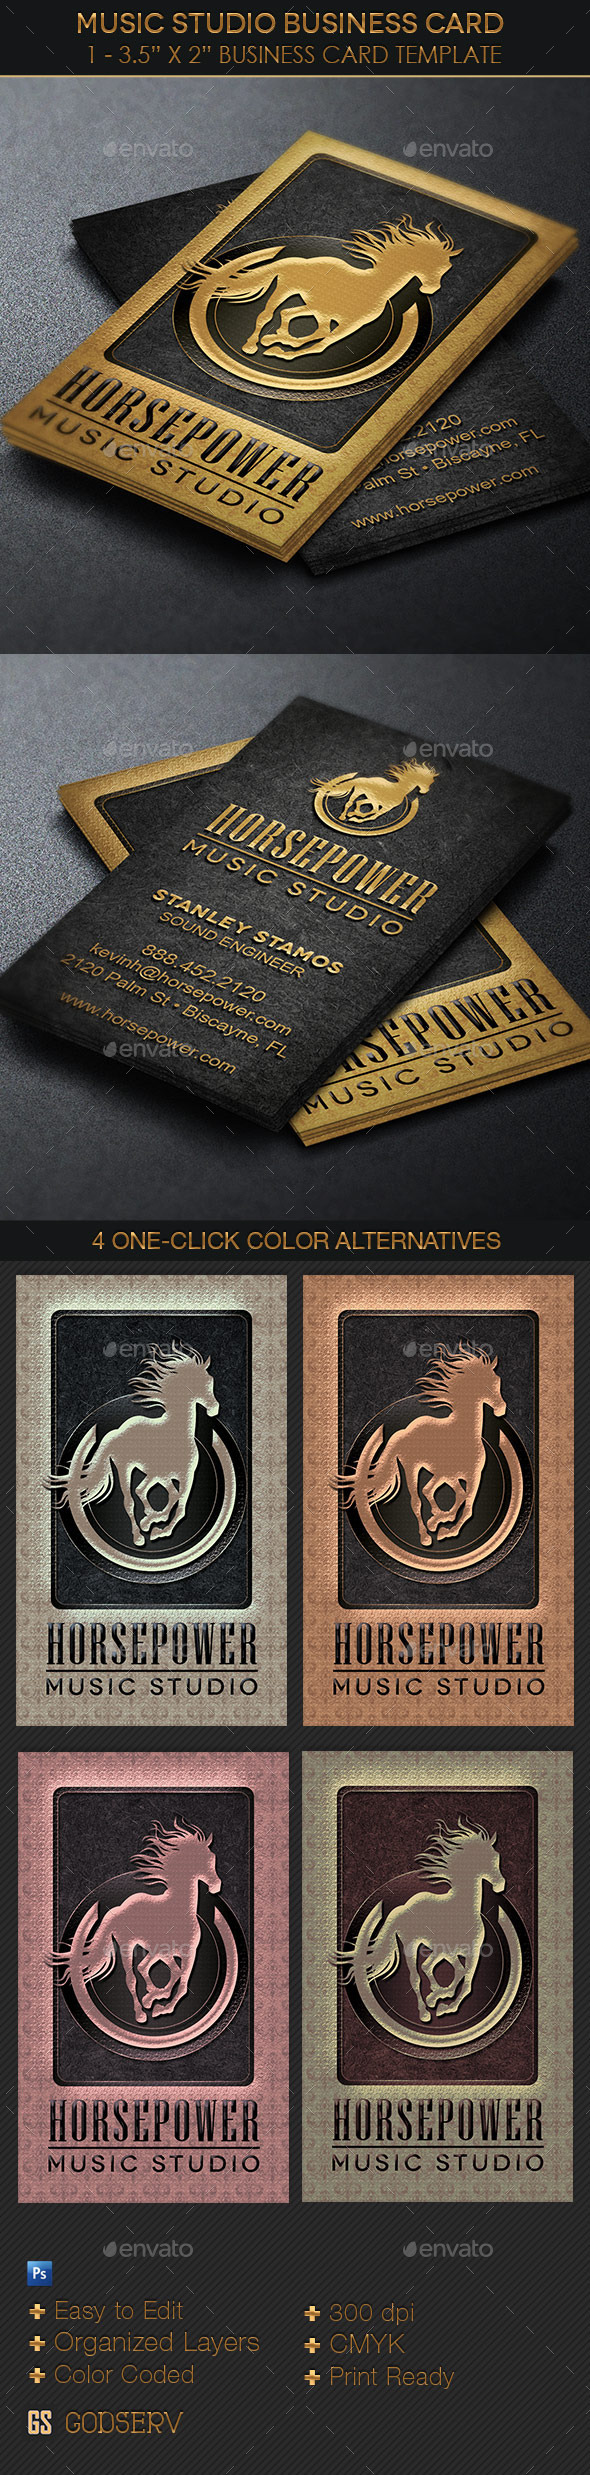 GraphicRiver Music Studio Business Card Template 11326847